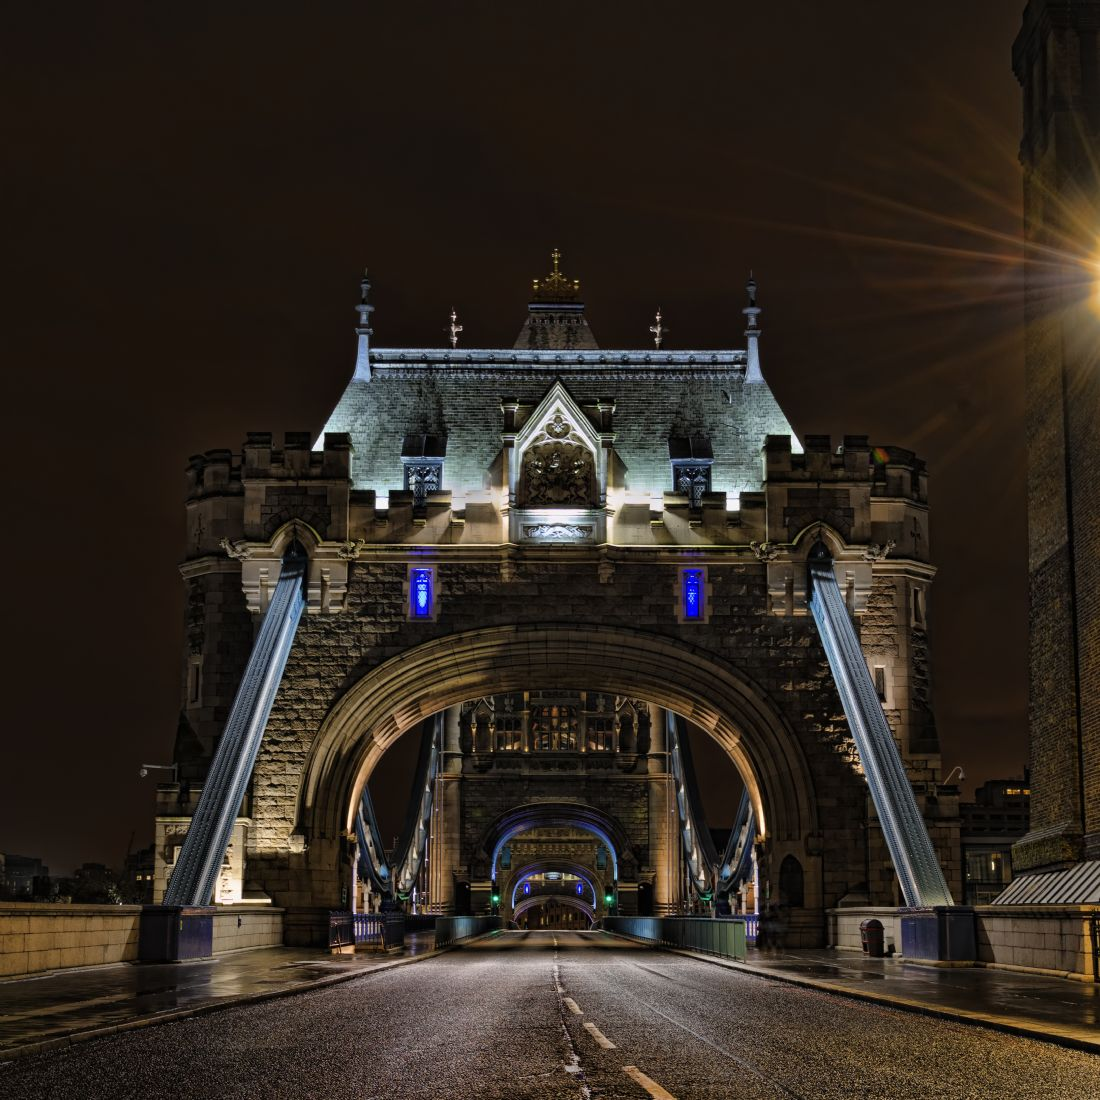 Steve Stamford | Tower bridge drama